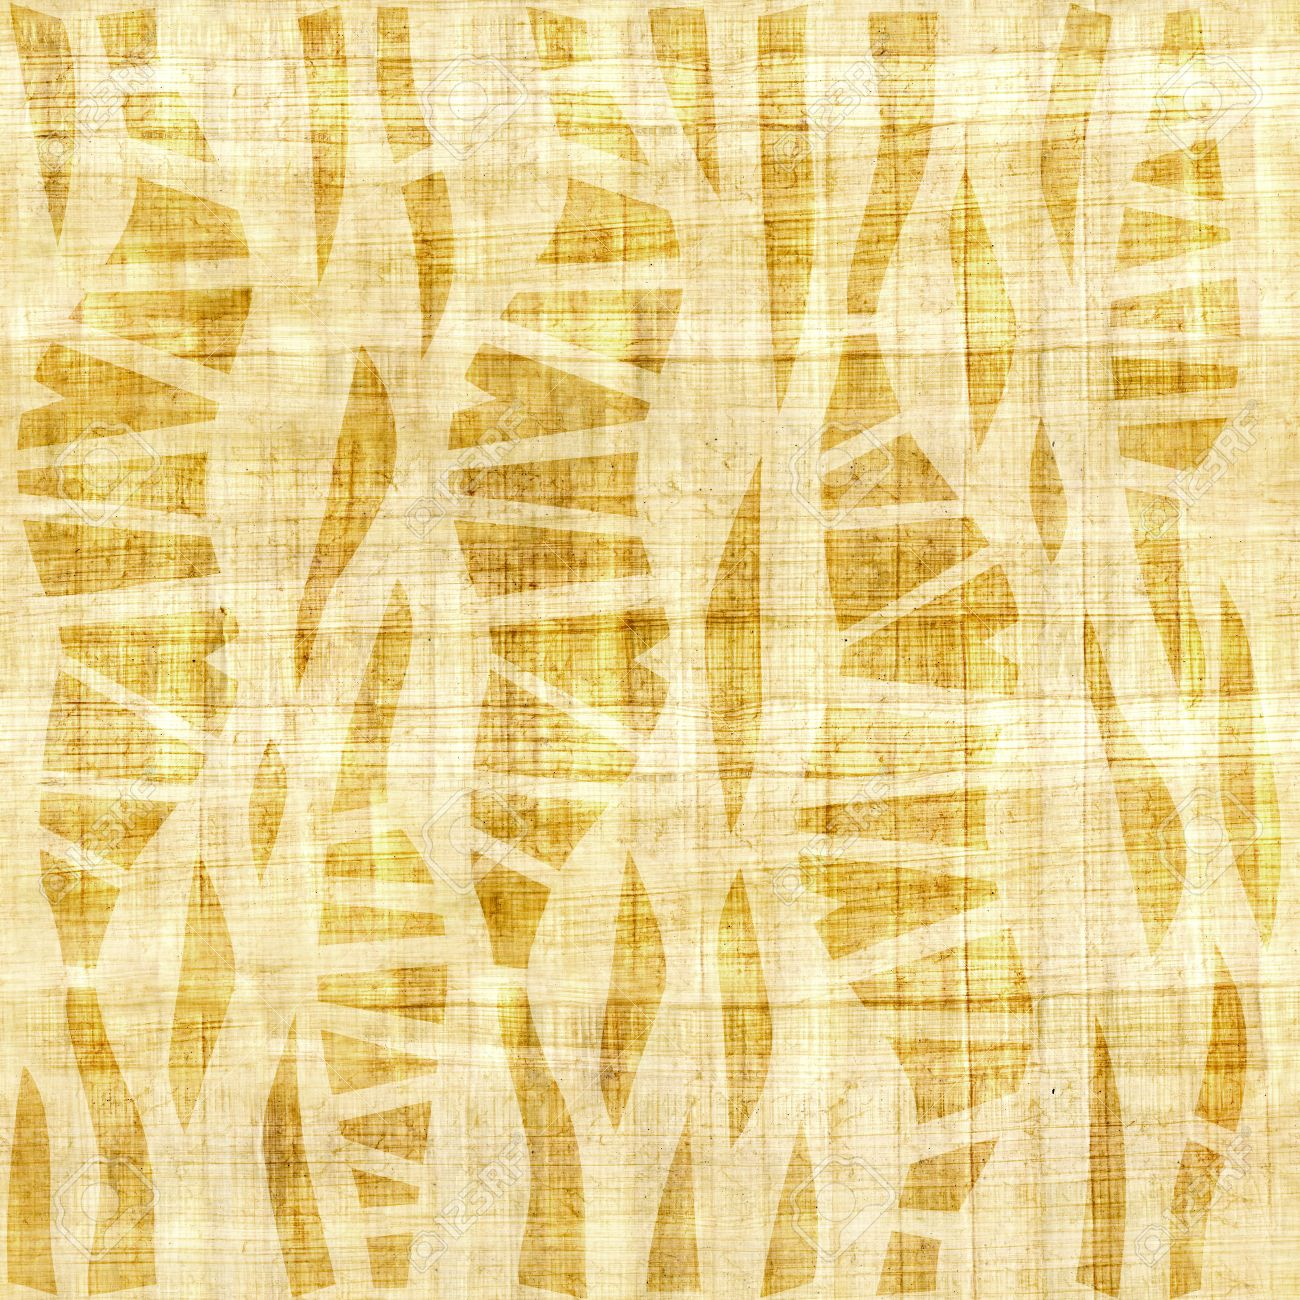 Abstract Decorative Wallpaper Papyrus Texture Seamless